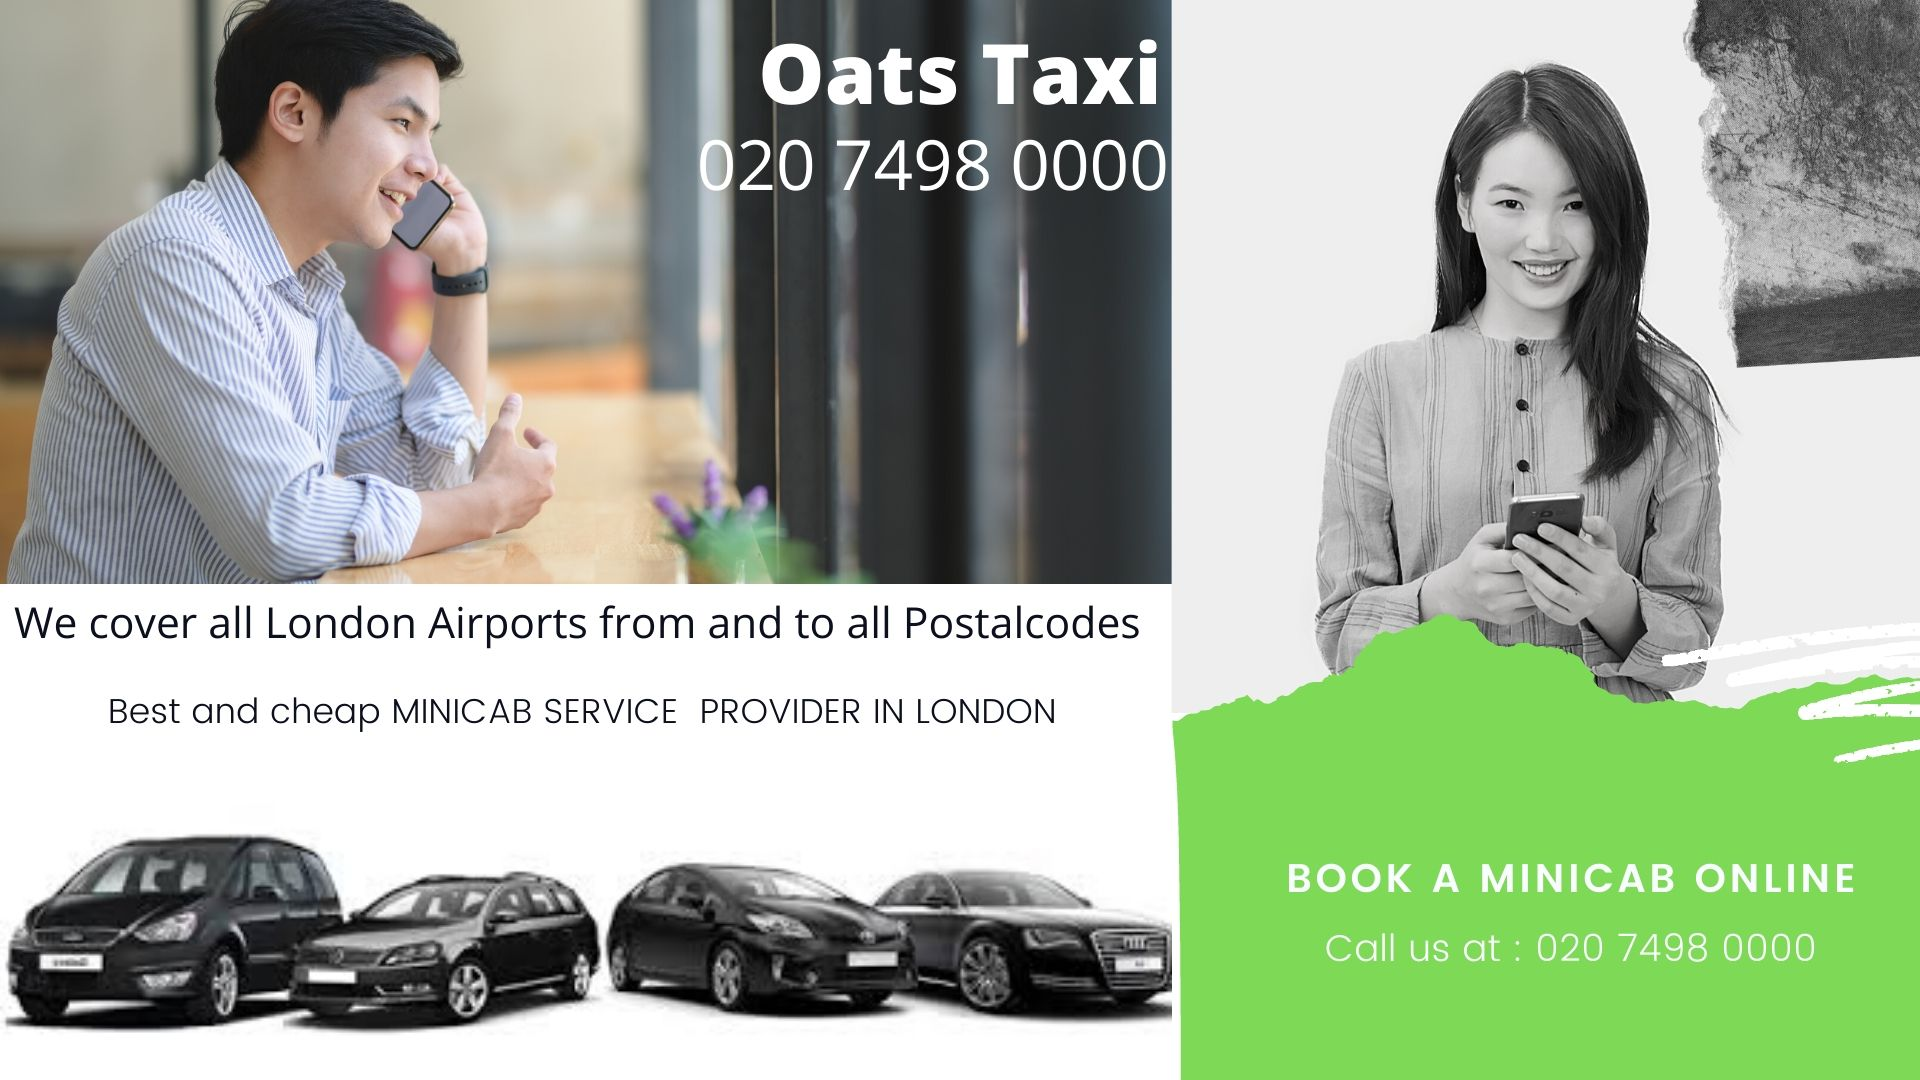 Nearest Taxi Office in Mitcham Junction | Gatwick Airport | Call now : 02074980000